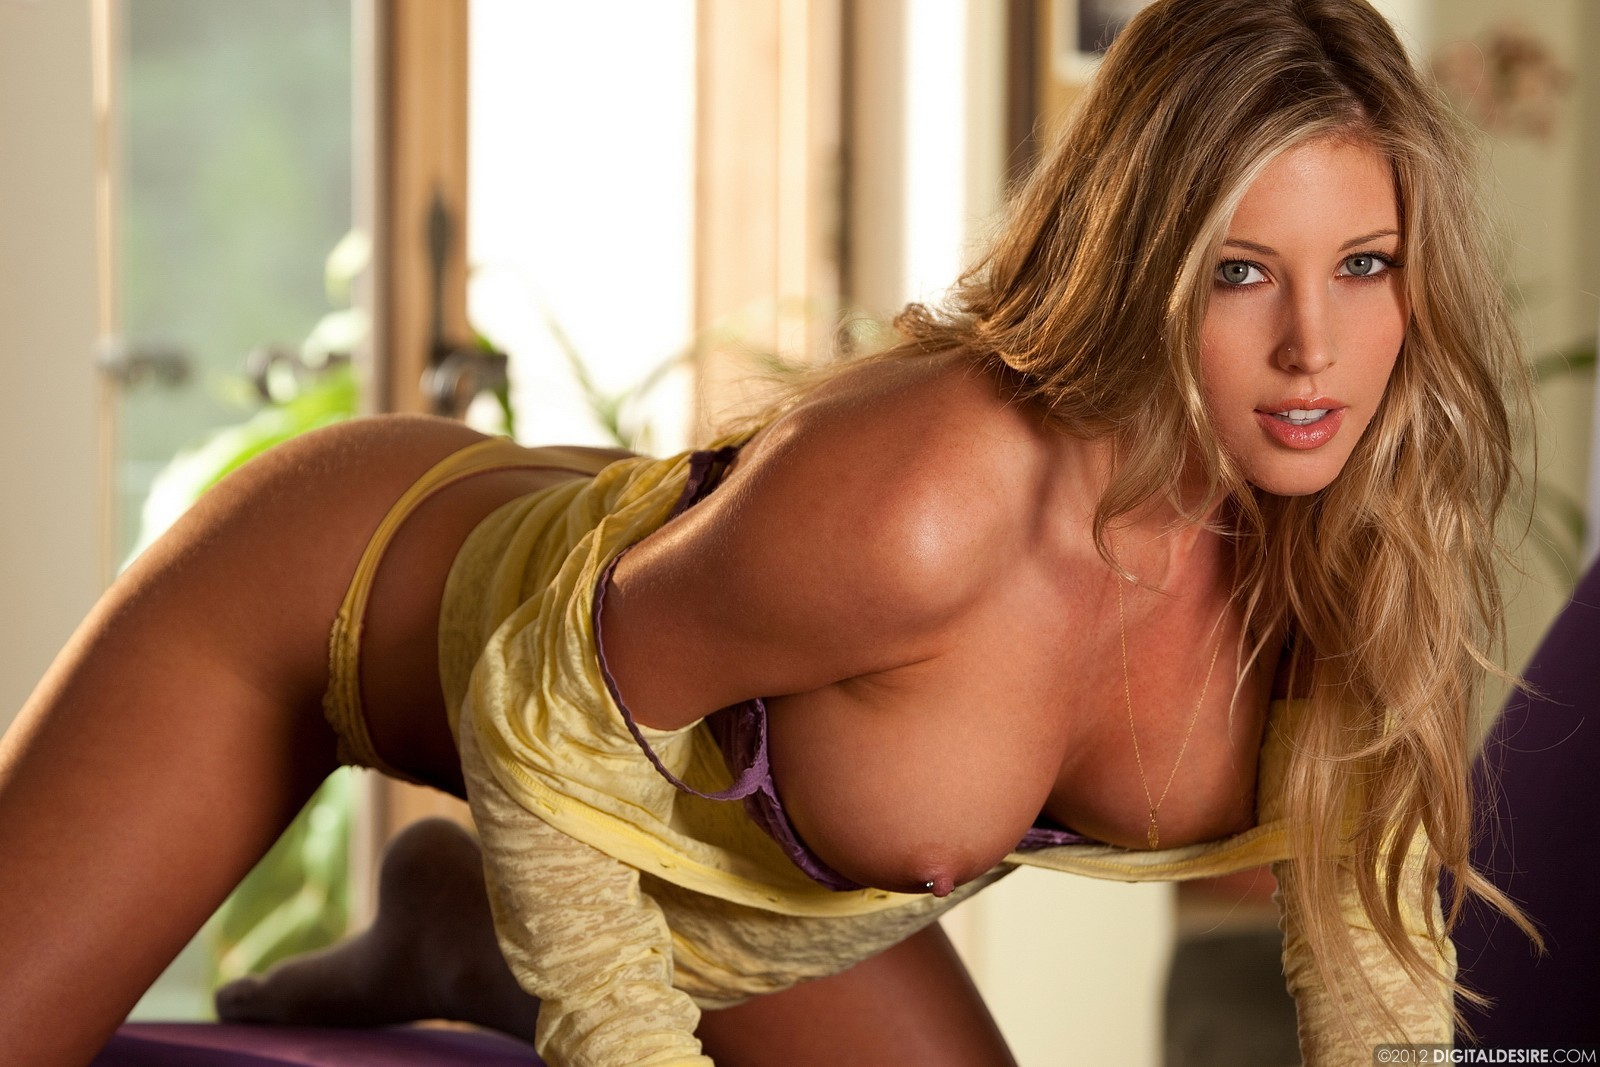 Samantha Saint Teases In A Yellow Shirt 751-5630